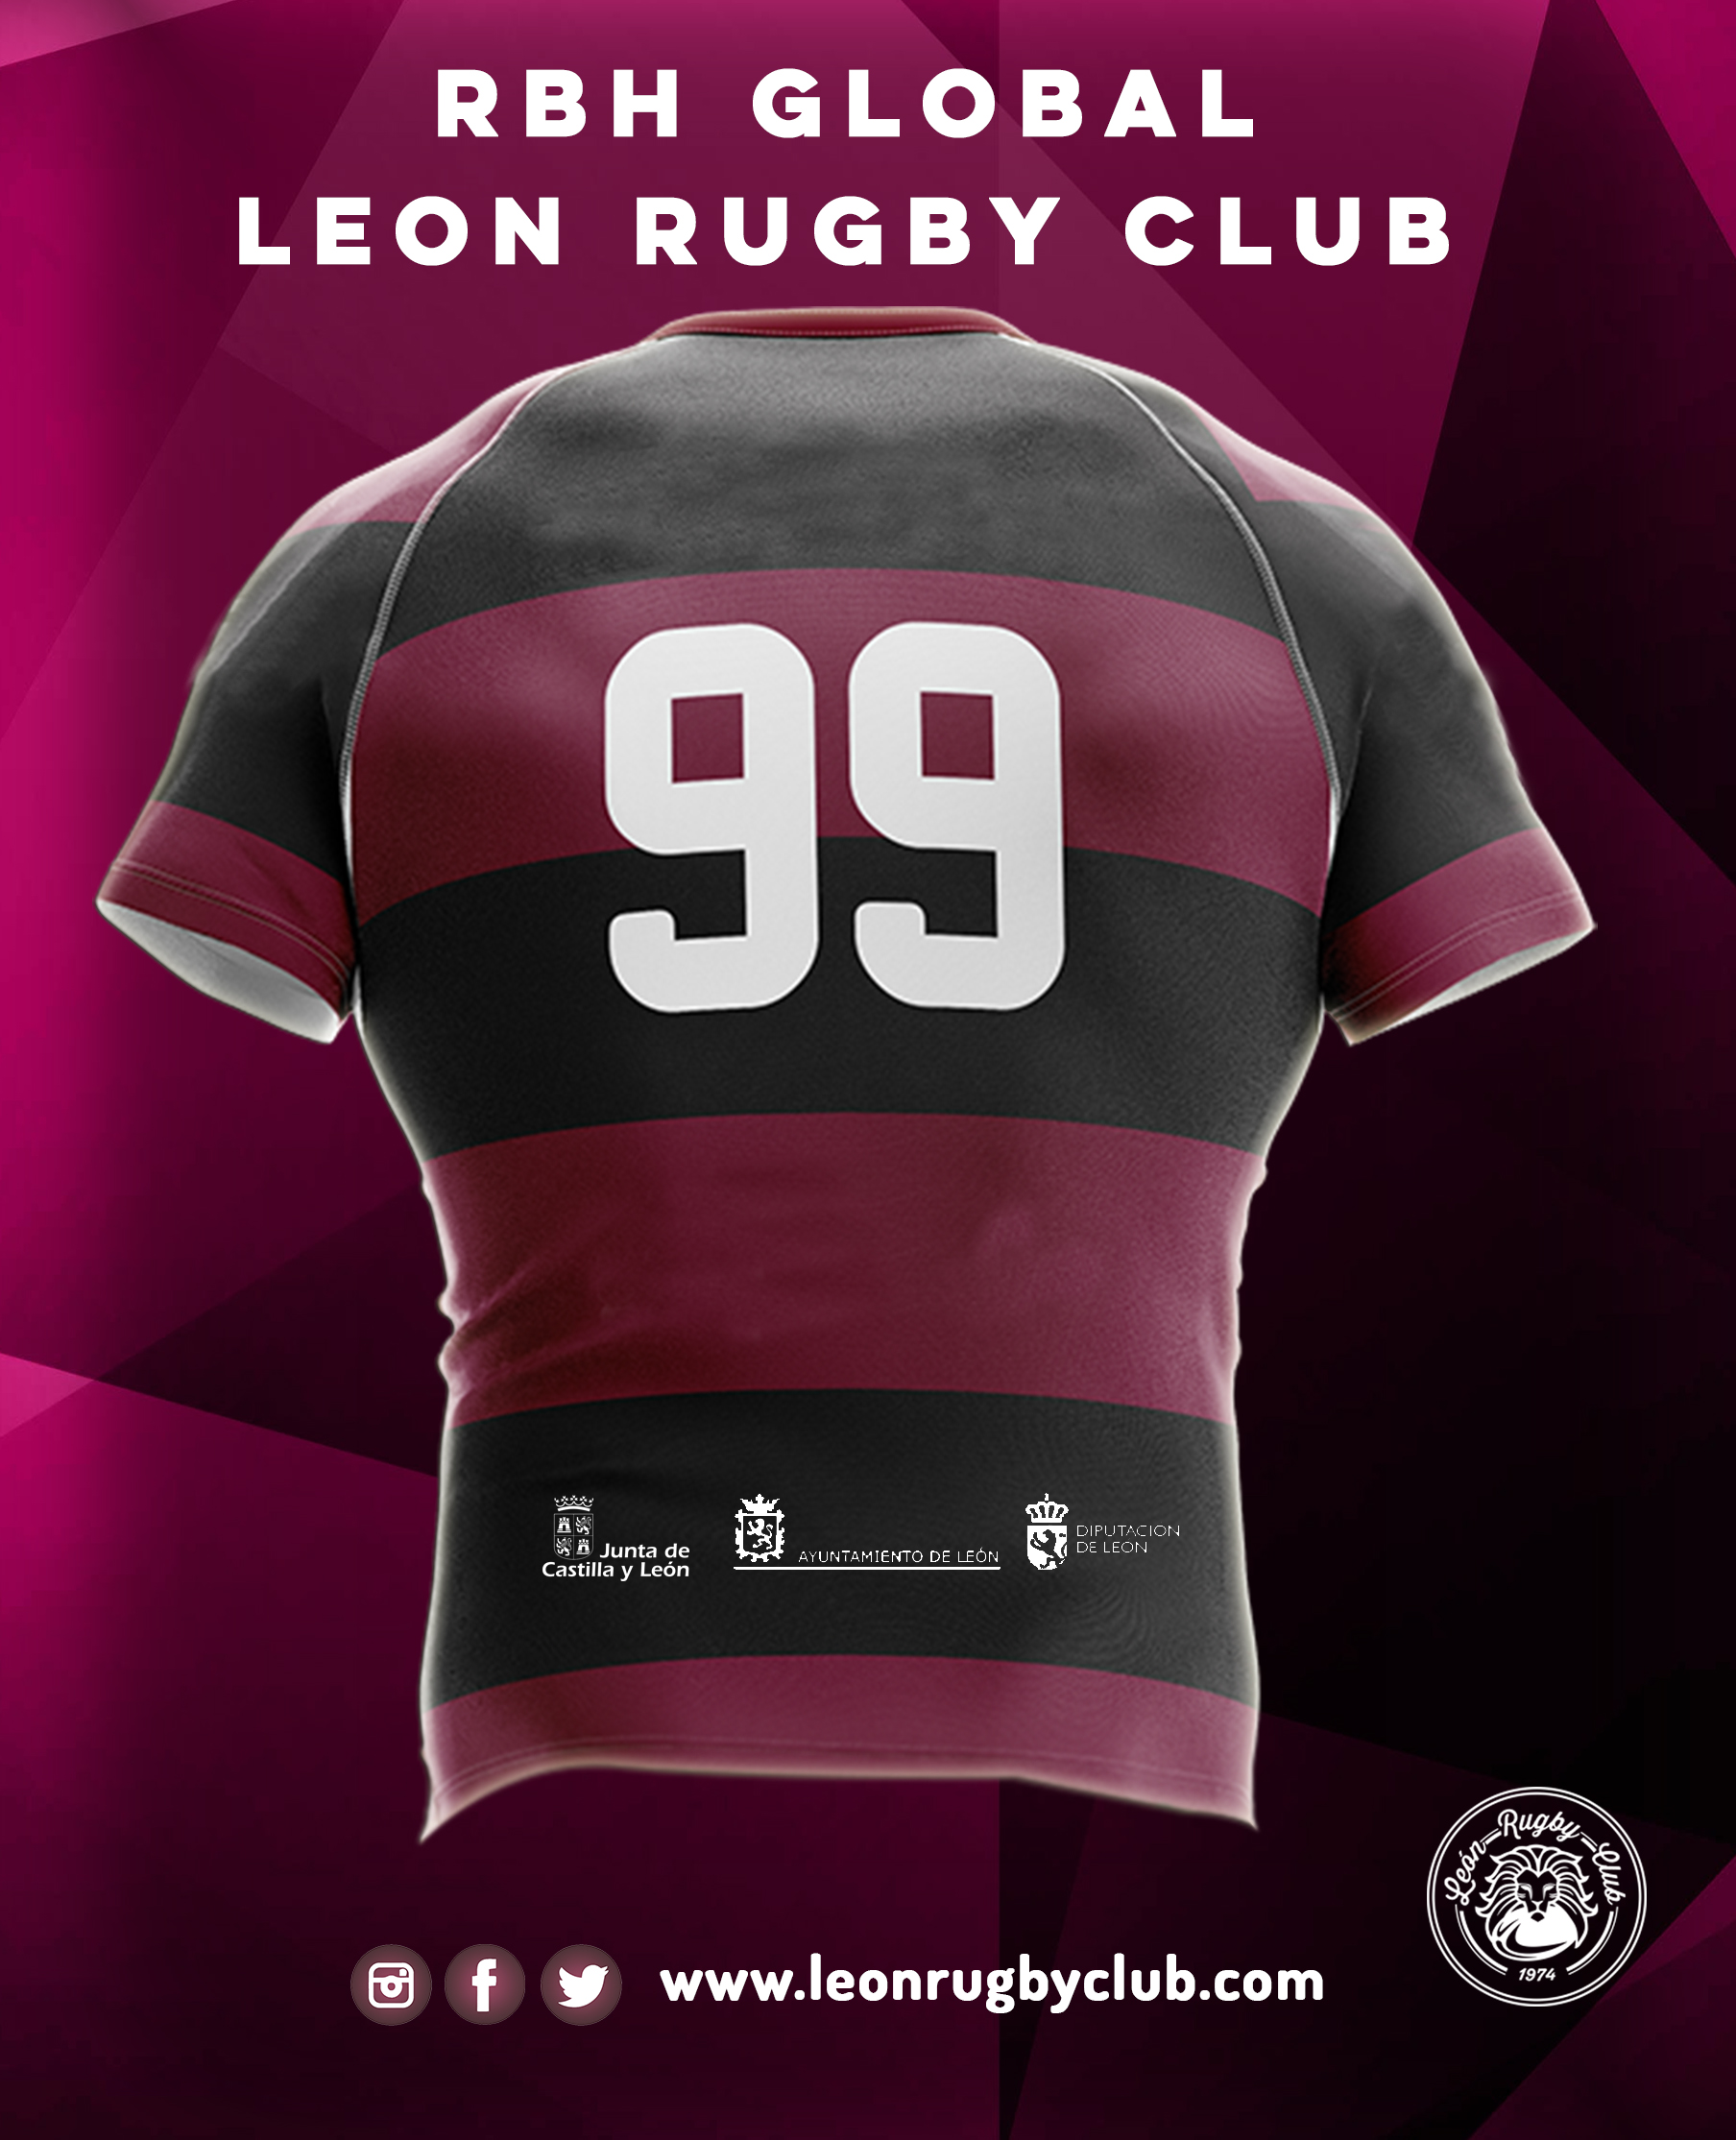 Camiseta de rugby reversible RBH León Rugby Club 19-20 2